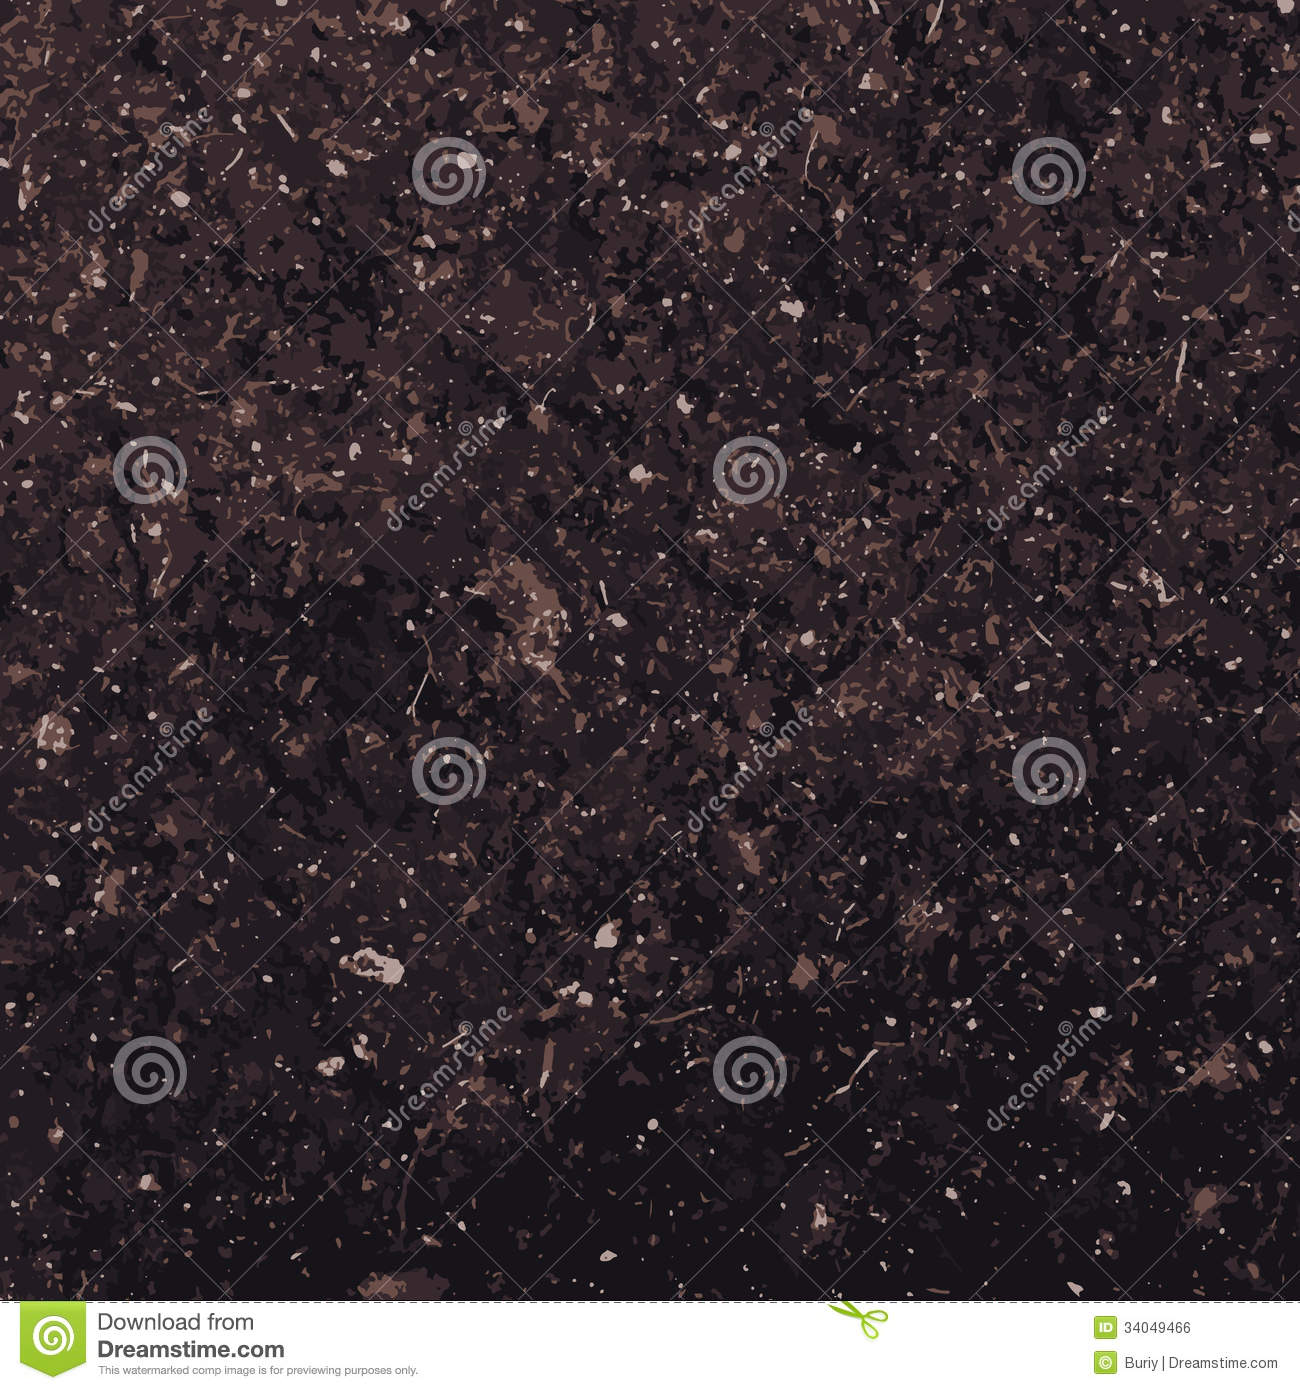 Soil Texture Royalty Free Stock Image - Image: 34049466